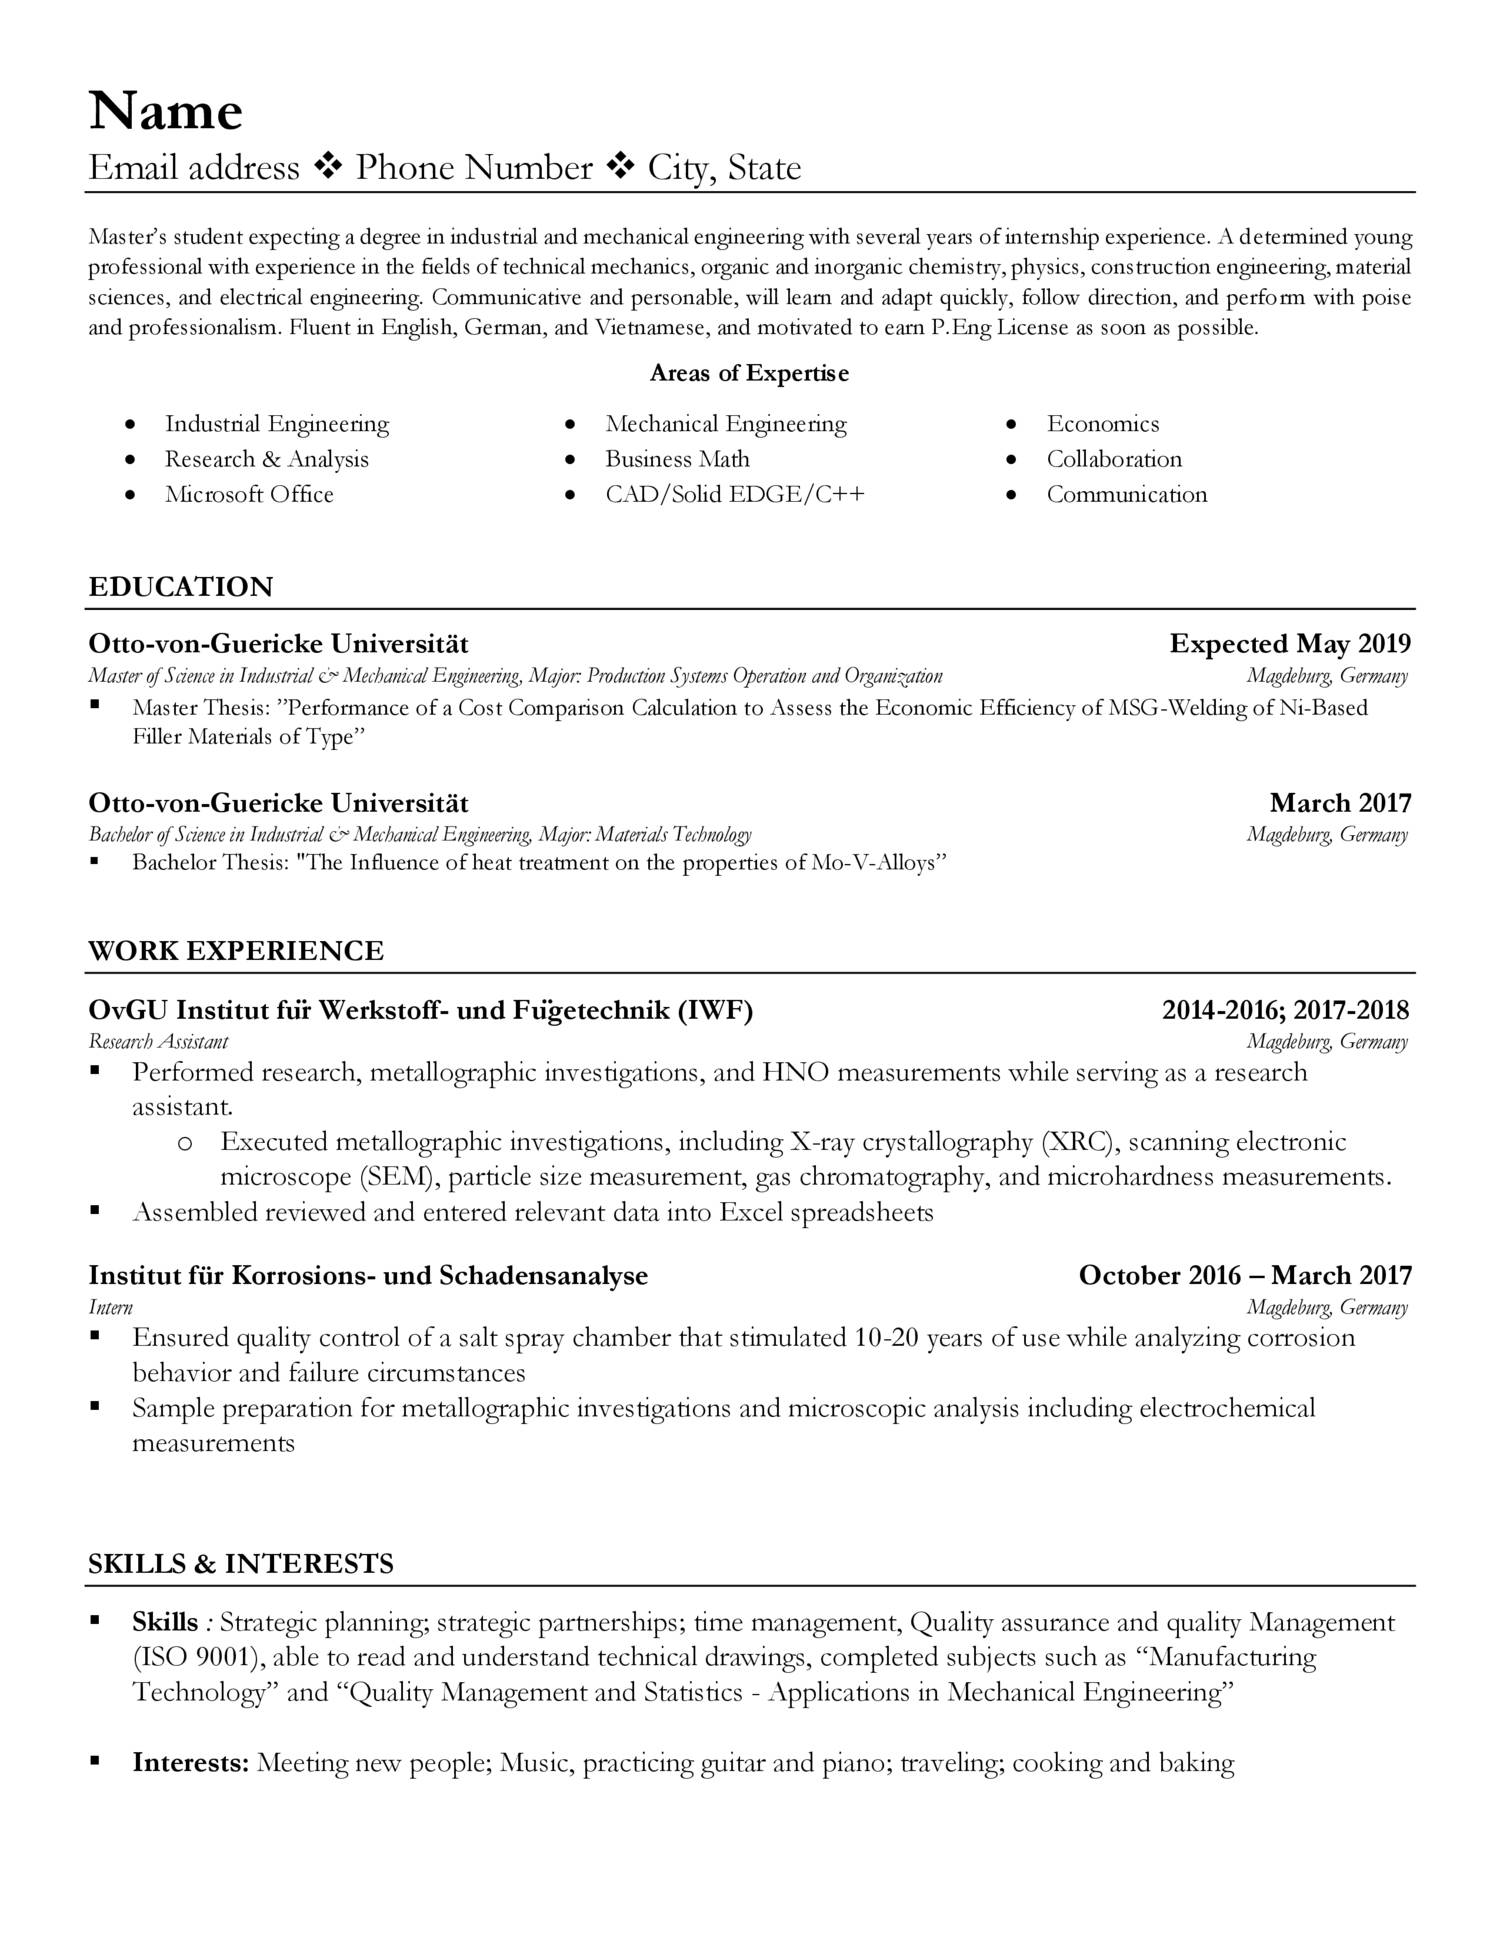 resume reddit docdroid interests pdf building electrician sample for welder position Resume Resume Interests Reddit